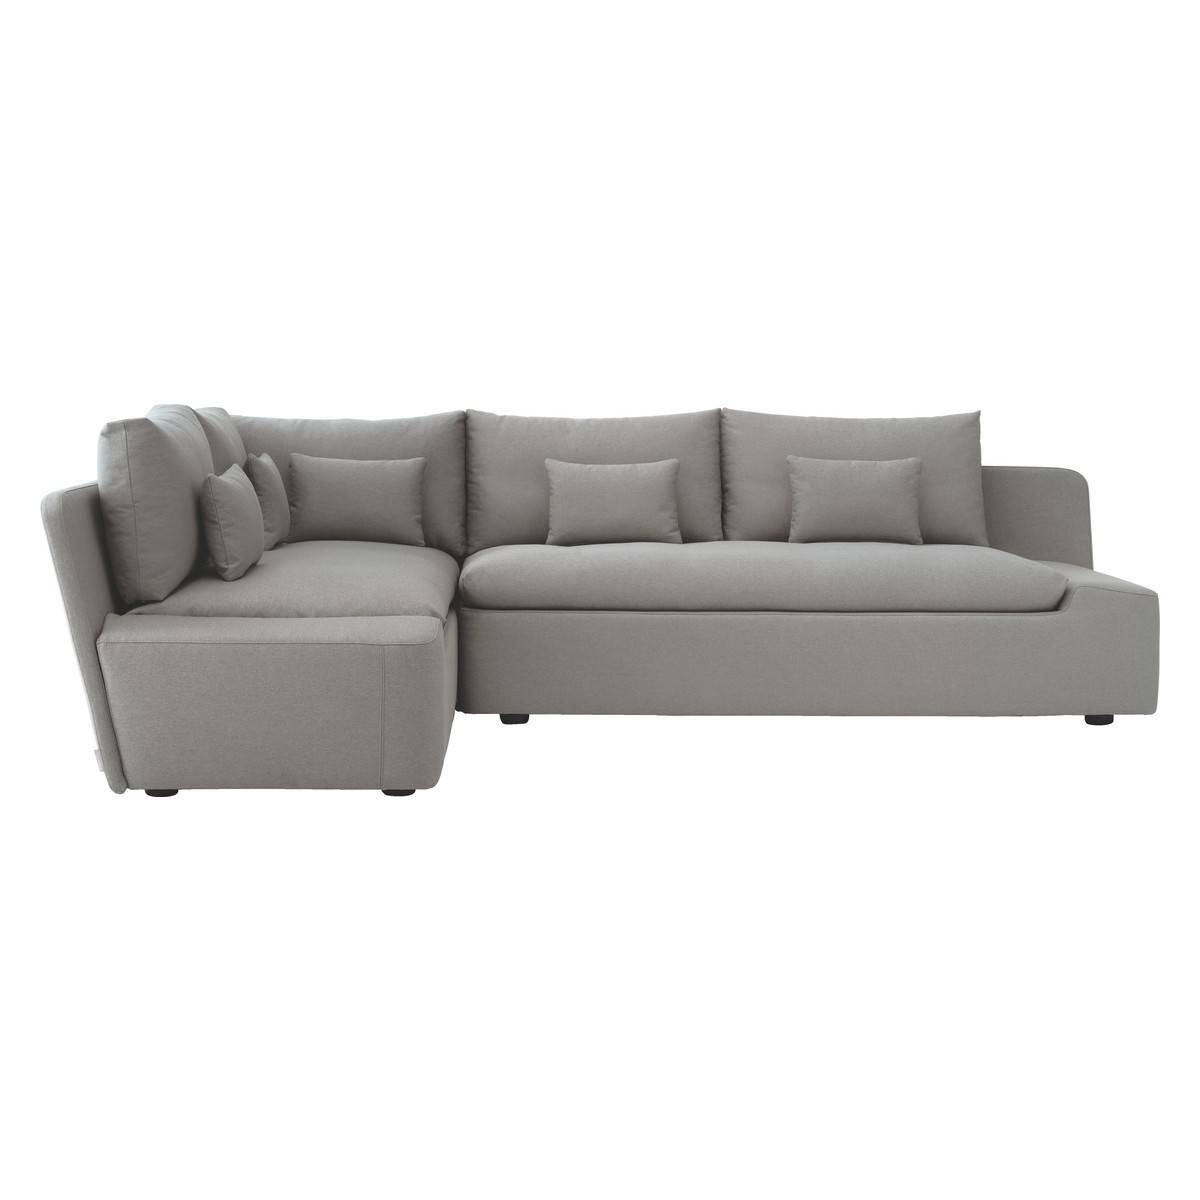 Kasha Light Grey Textured Fabric Right-Arm Corner Sofa | Buy Now regarding 2X2 Corner Sofas (Image 17 of 30)